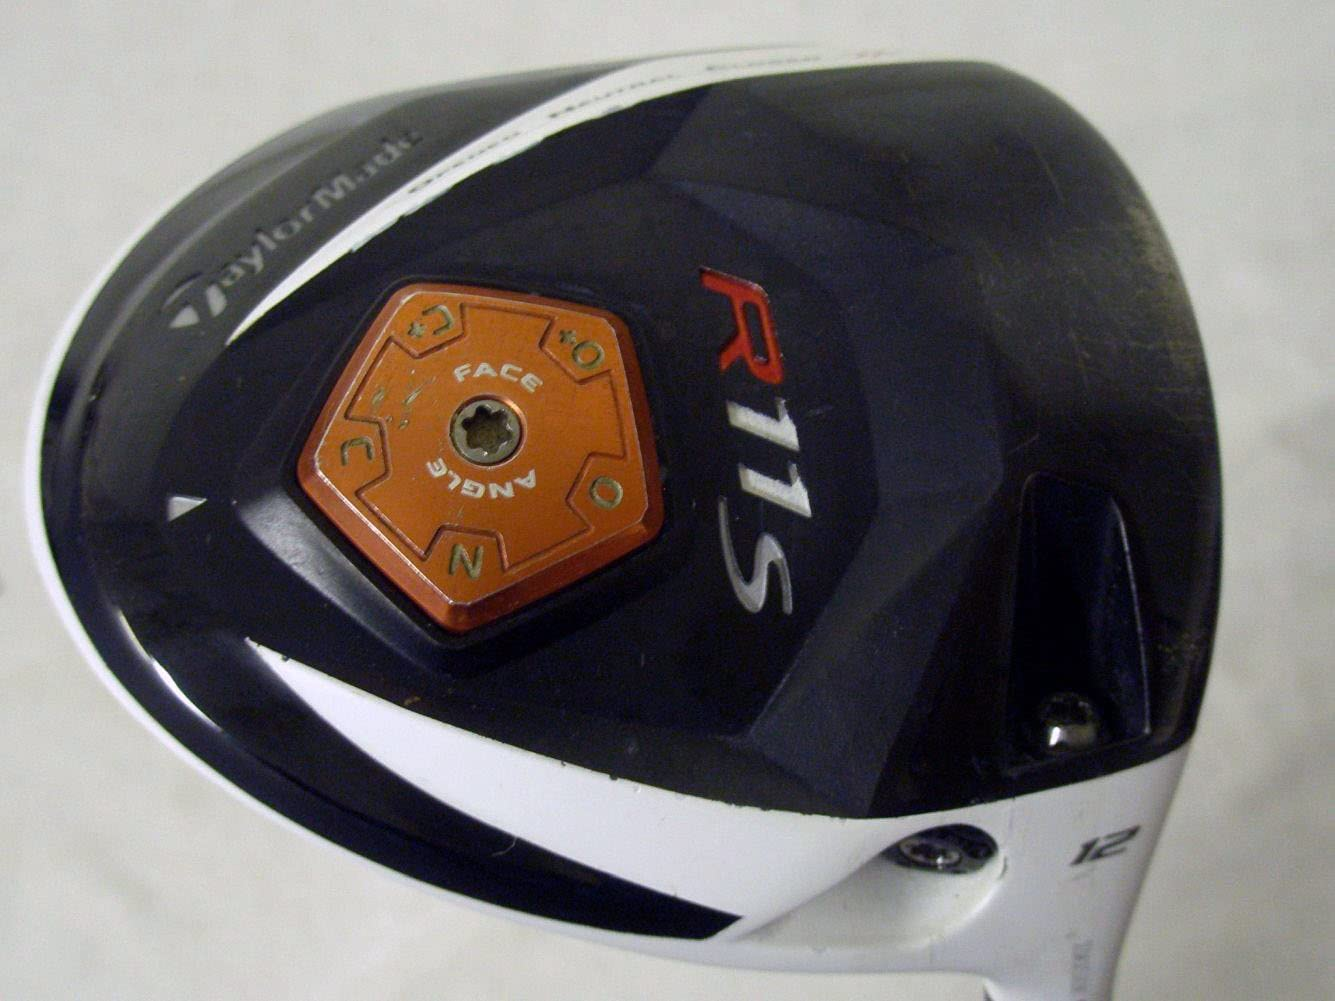 Taylor Made R11S Driver 12 RIP Phenom, Senior Golf Club